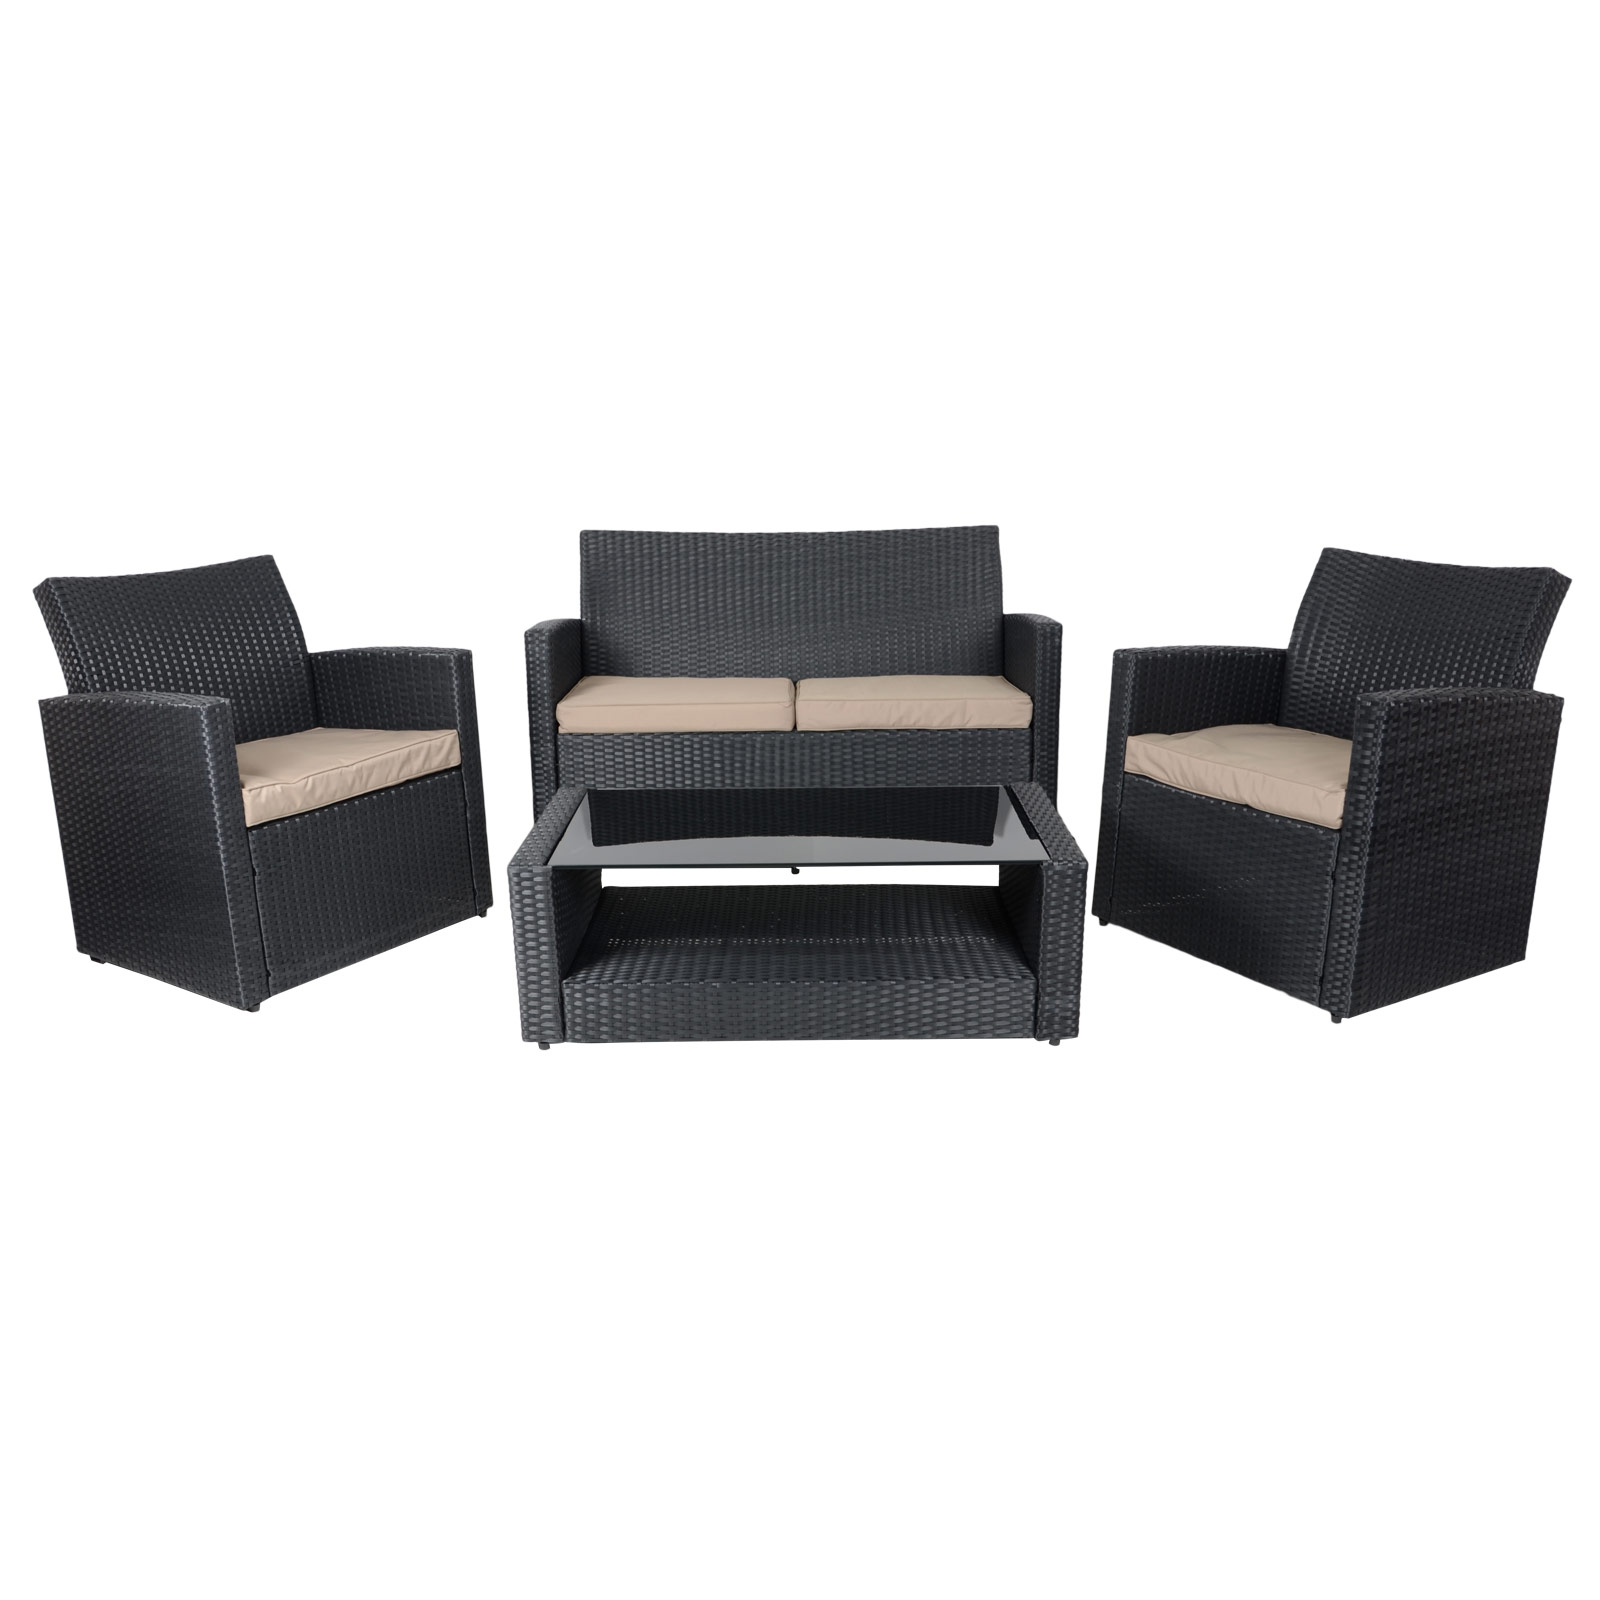 Black Rattan Sofa Uk Tuscany Black Sofa Set Table Chairs Rattan Wicker Garden